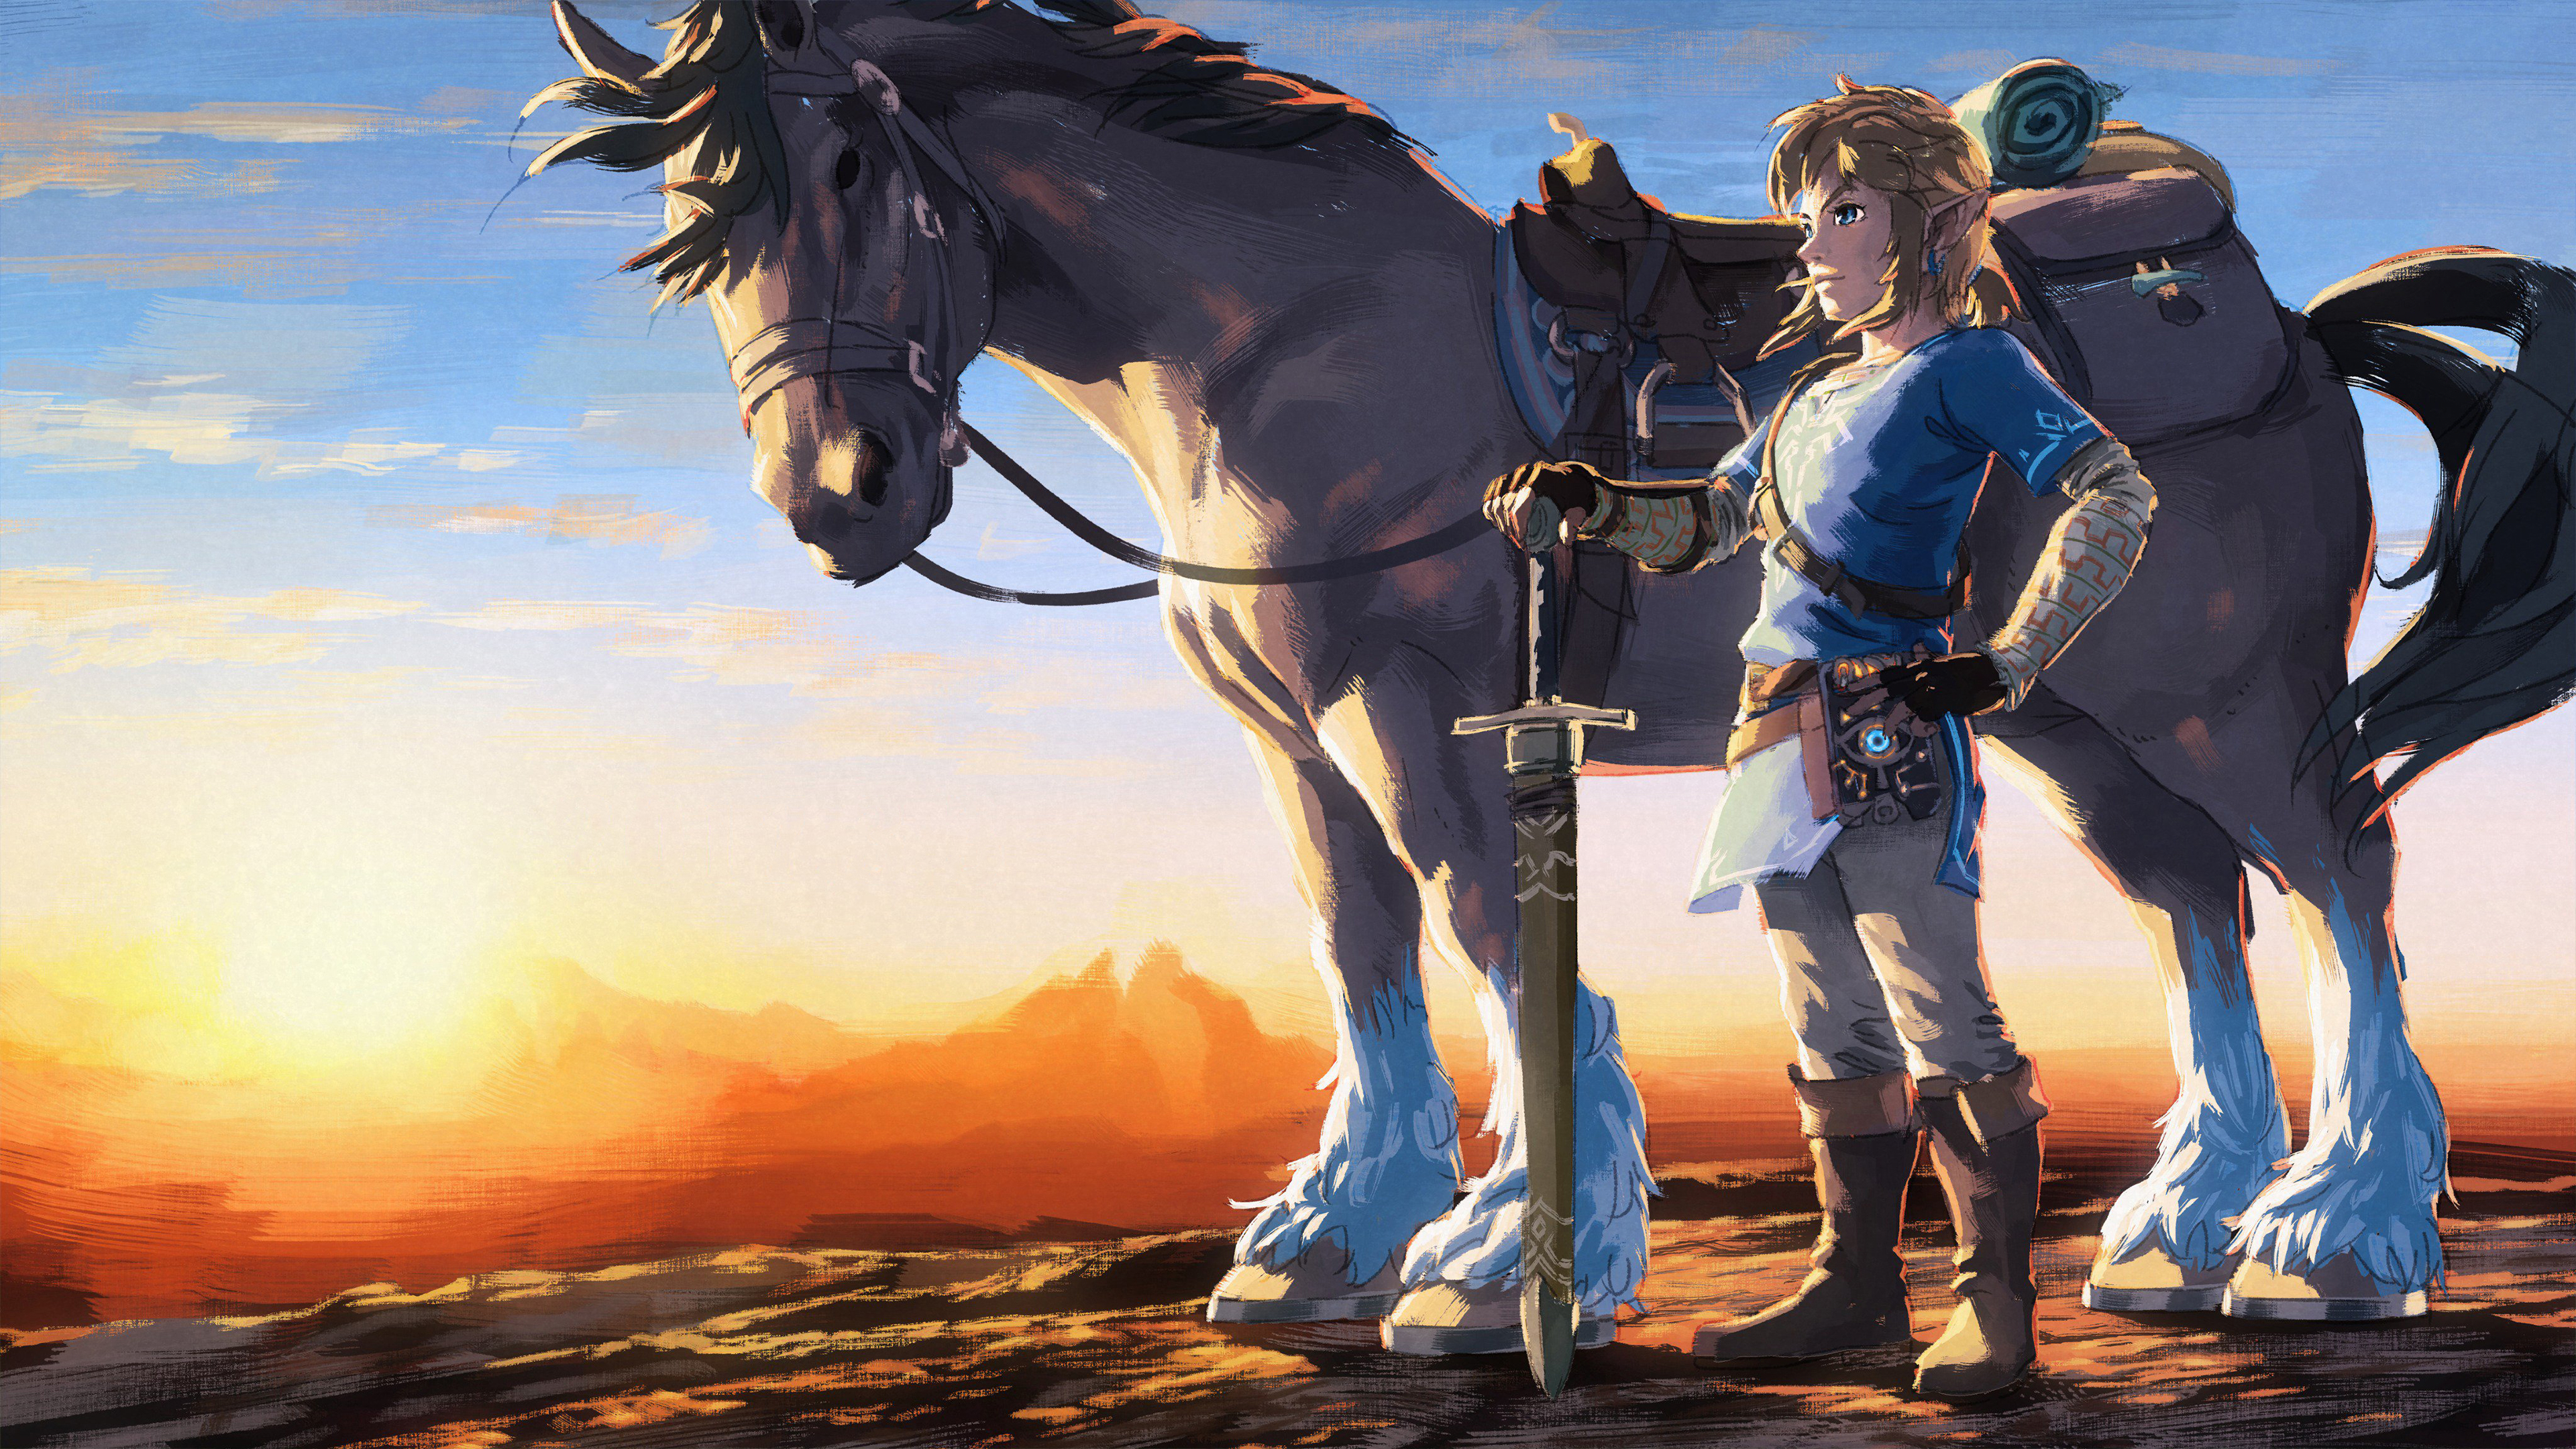 Breath Of The Wild Desktop Wallpaper: 1 Year Anniversary The Legend Of Zelda Breath Of The Wild